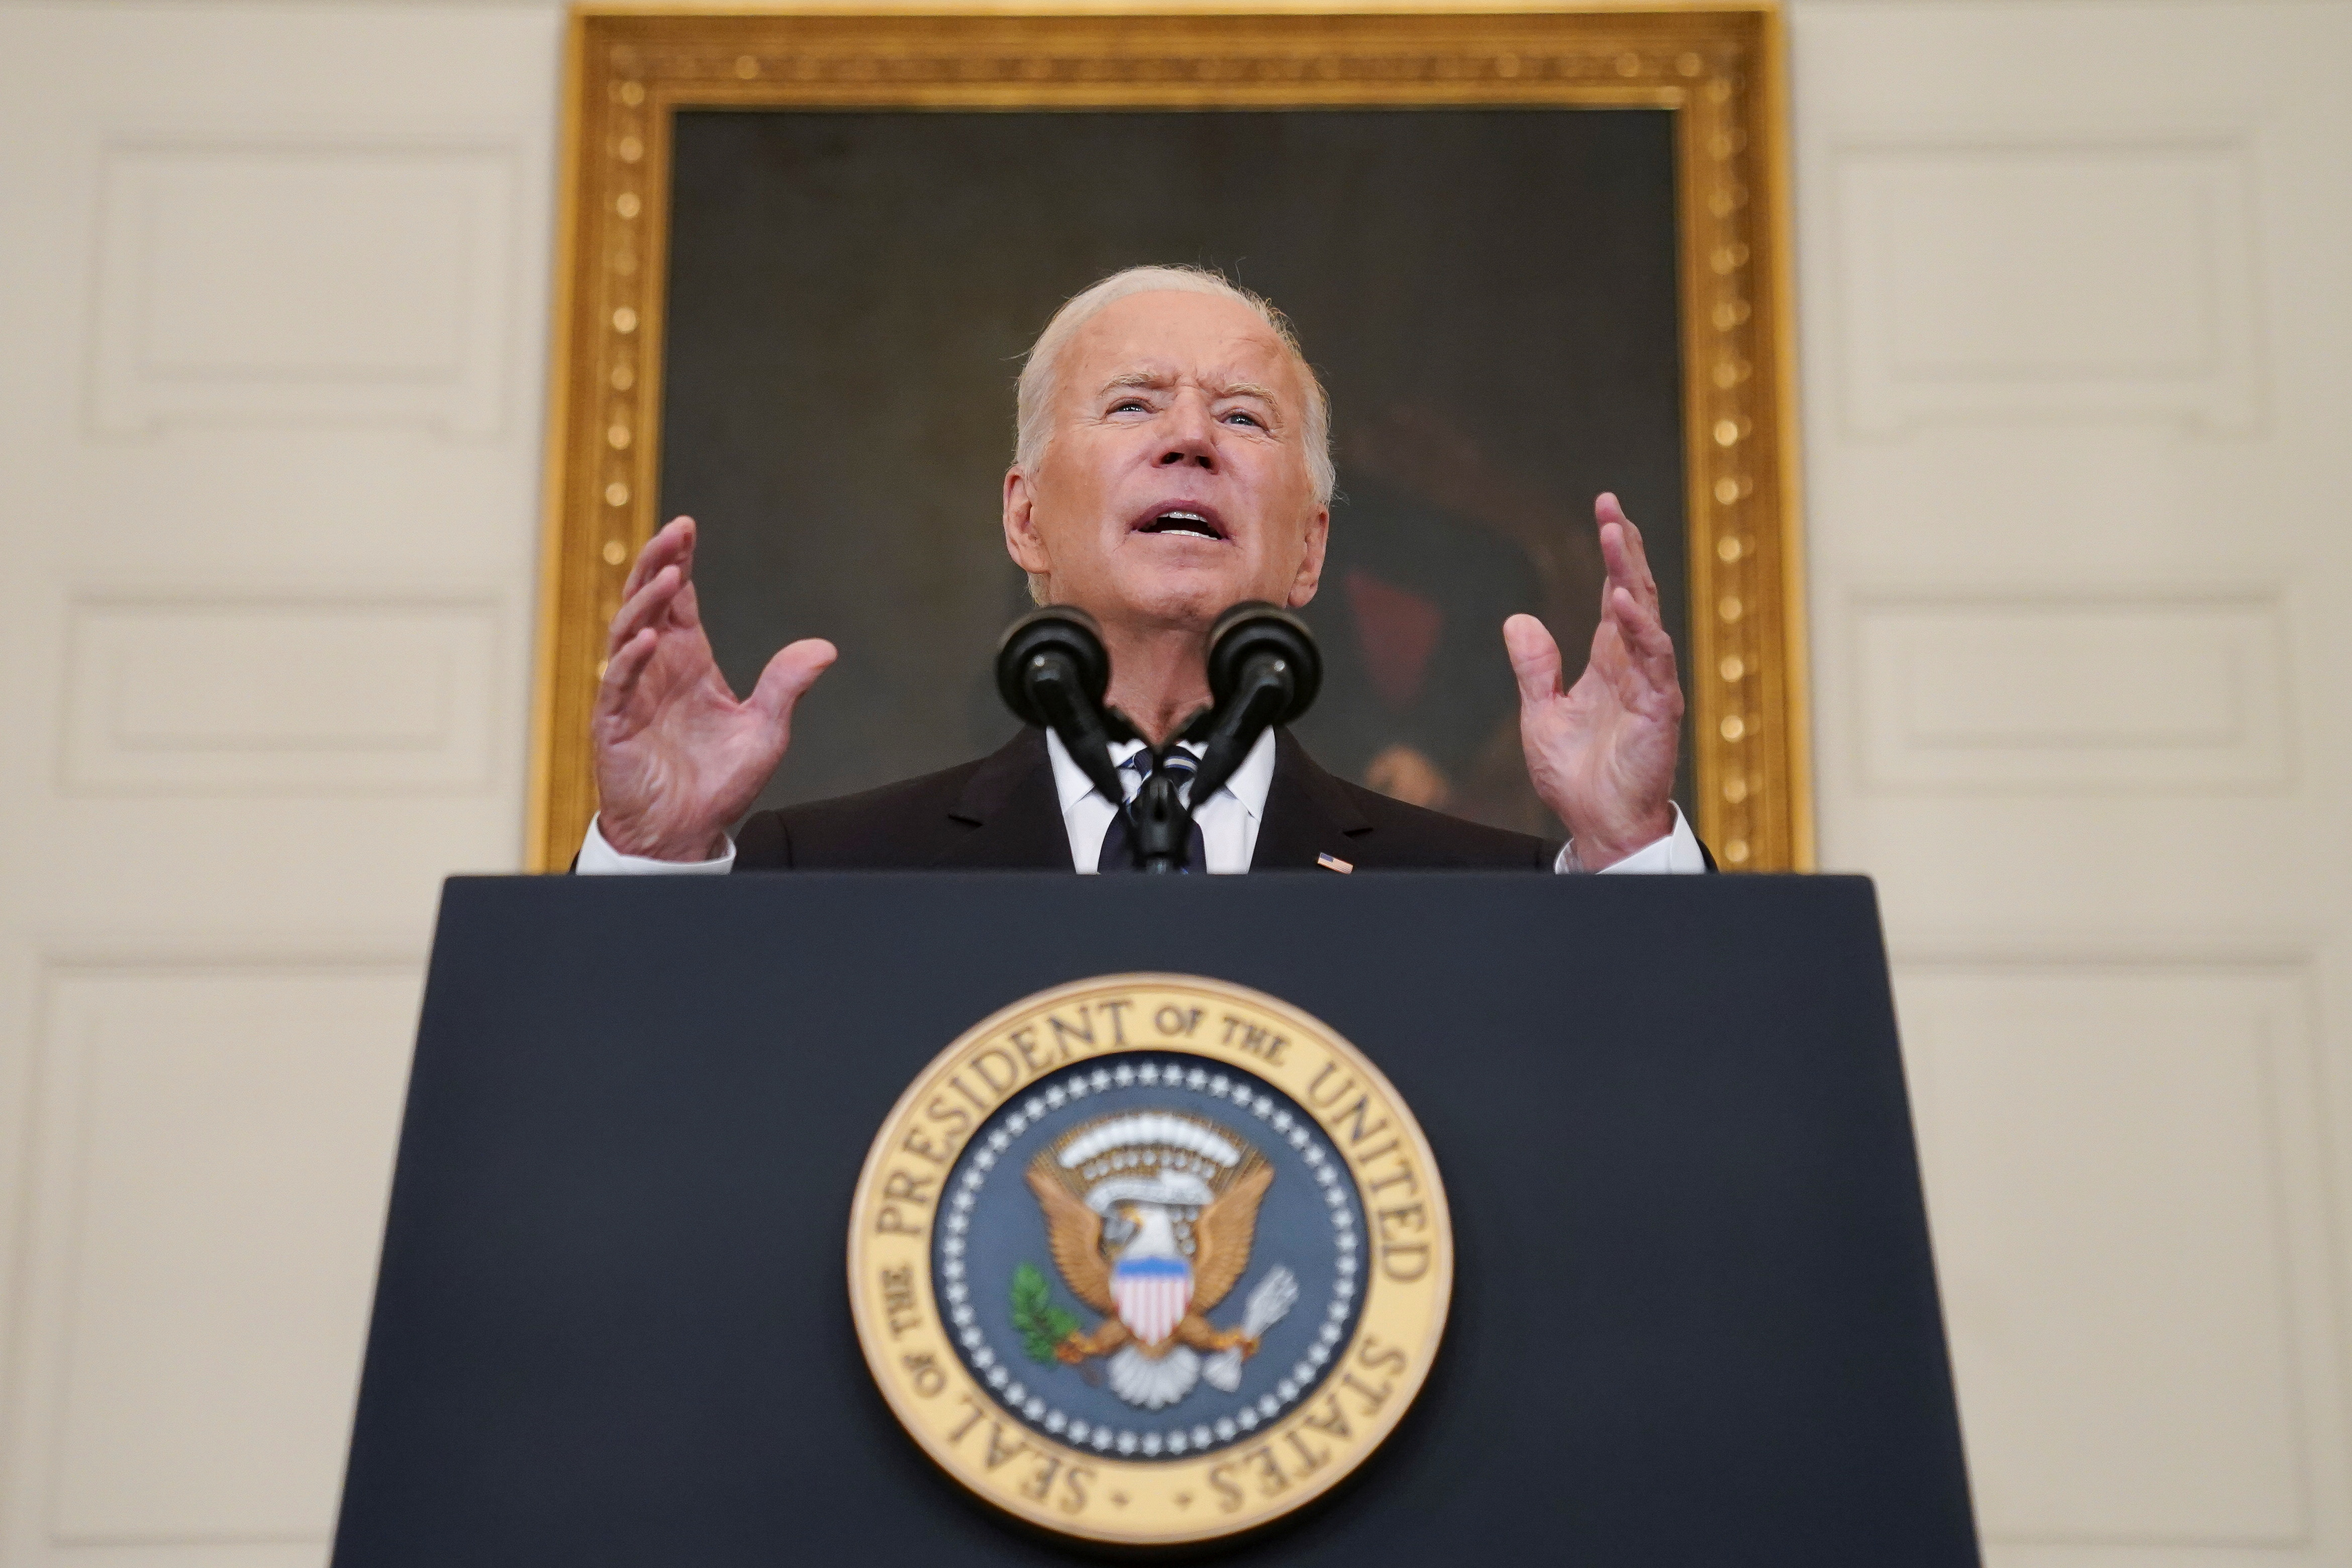 U.S. President Joe Biden delivers remarks on the Delta variant and his administration's efforts to increase vaccinations, from the State Dining Room of the White House in Washington, U.S., September 9, 2021. REUTERS/Kevin Lamarque